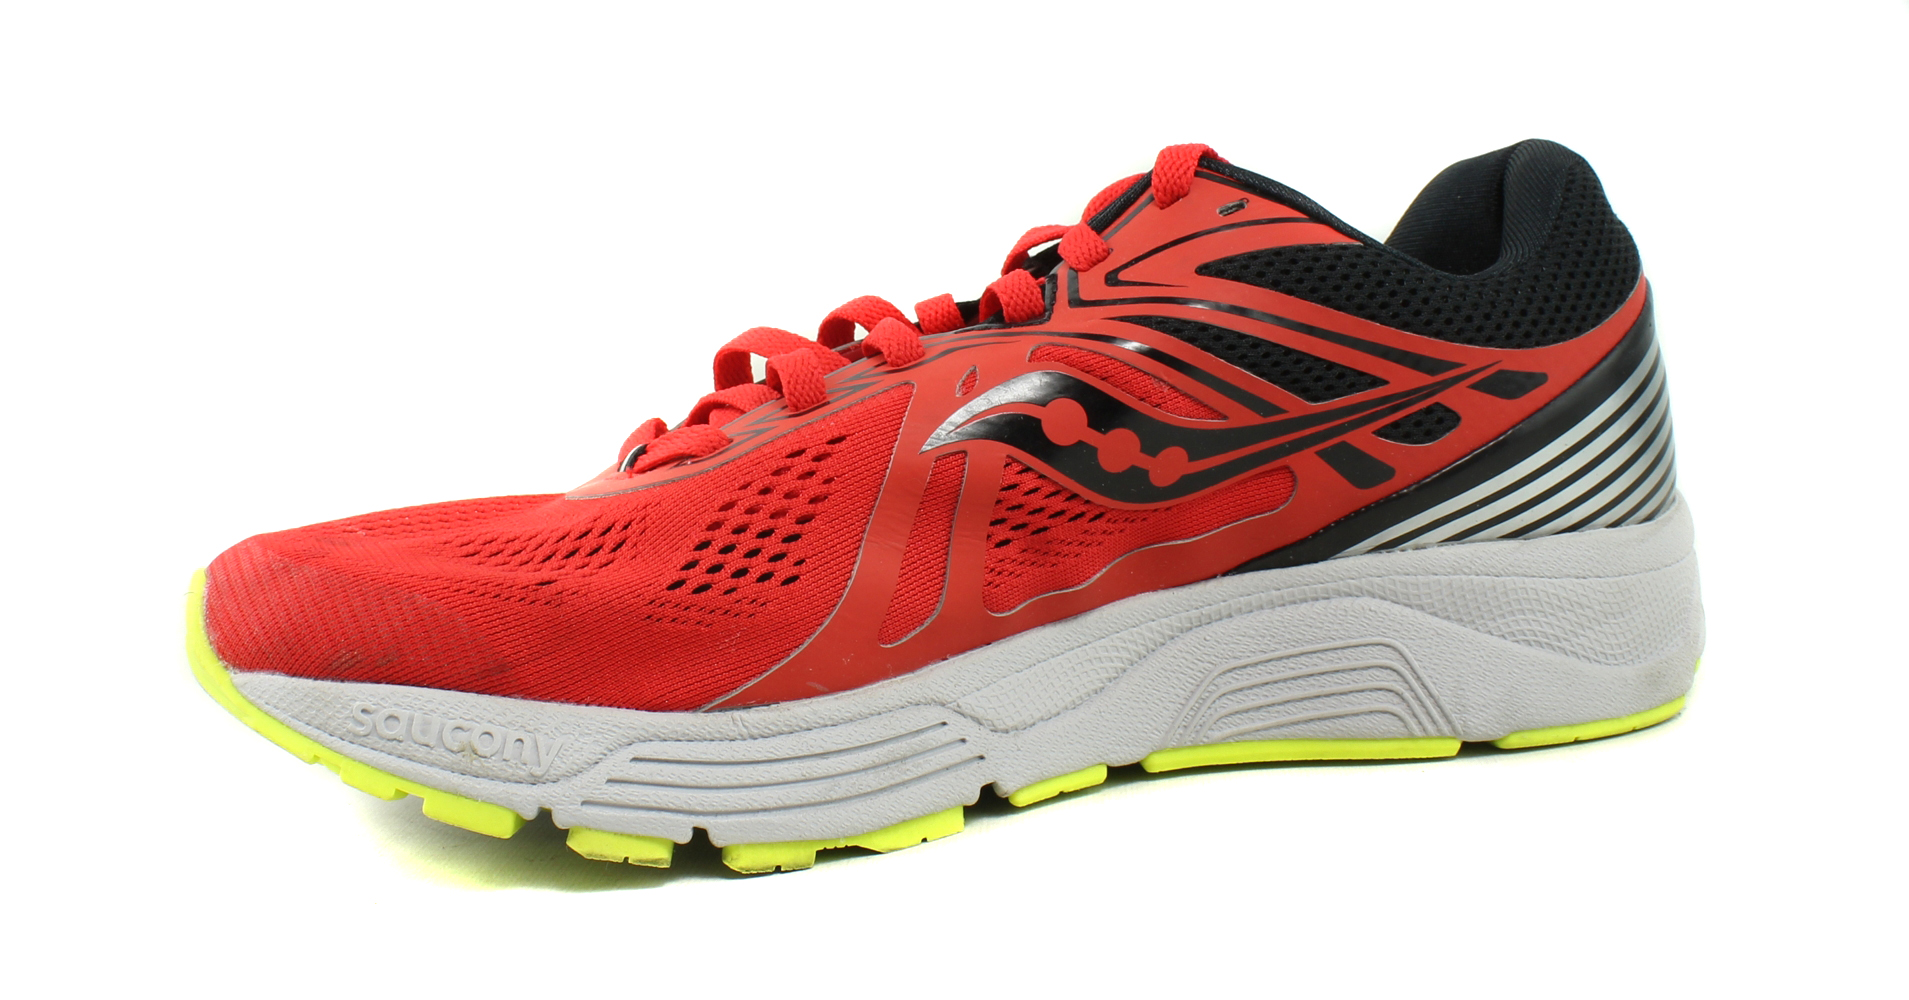 size 40 9e2a5 bf403 ... Saucony Mens Swerve-M Red Black Cotton Running Shoes Size 10 (363211 ...